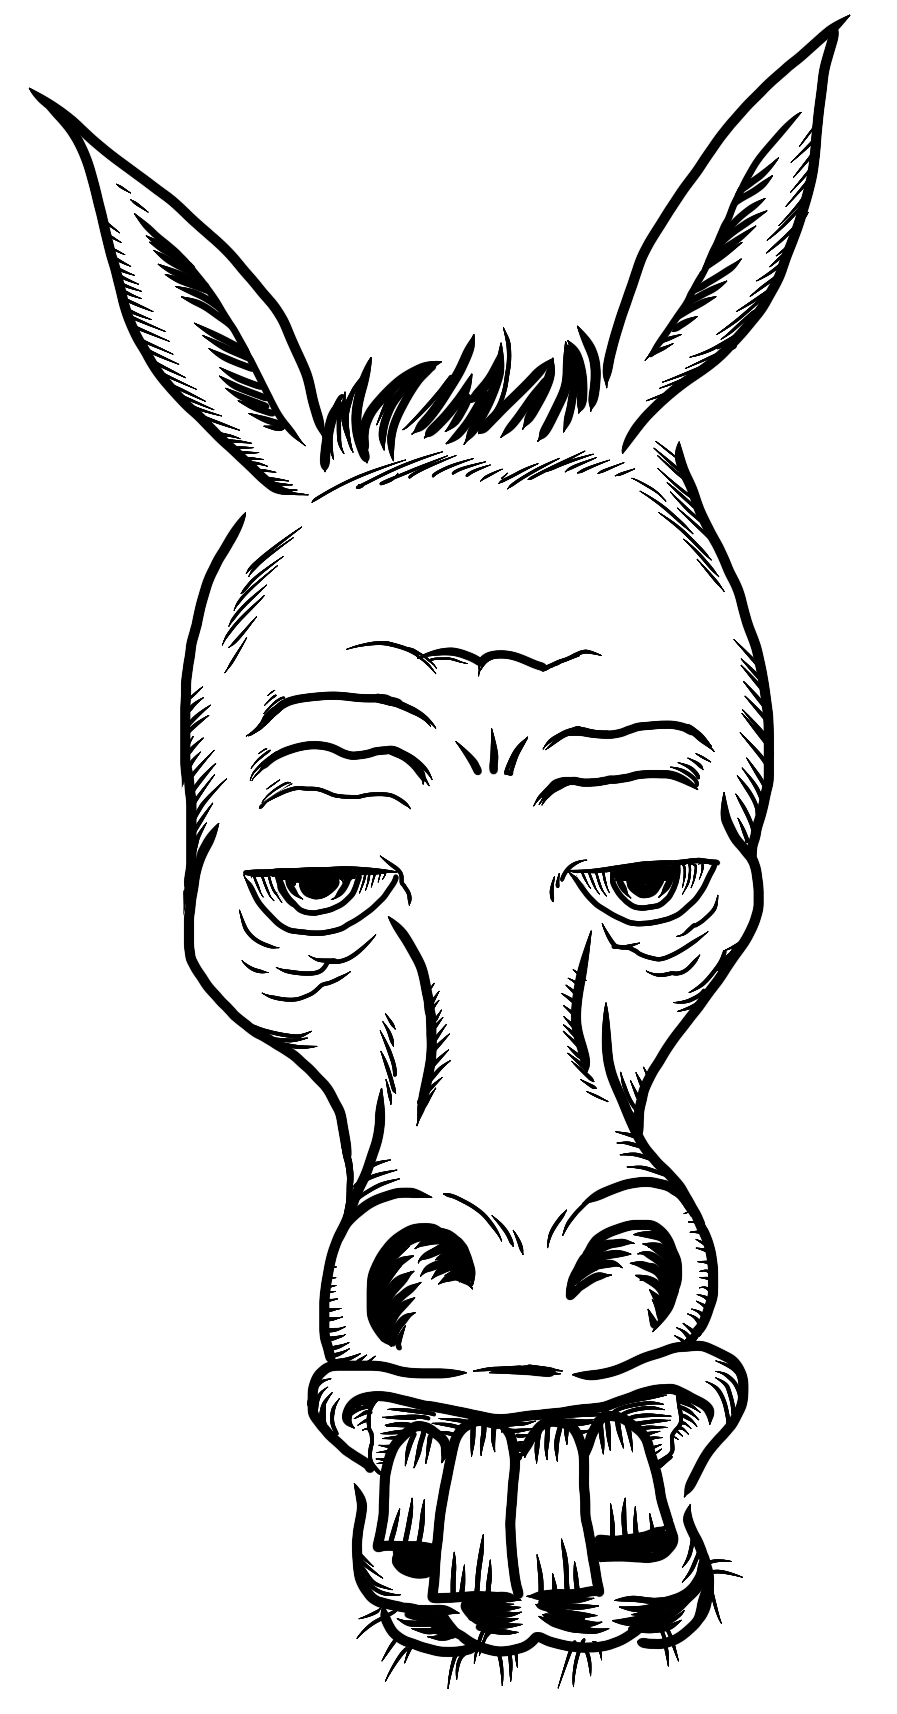 drawing of a donkey donkeys malcontent comics incorporated presents a drawing donkey of